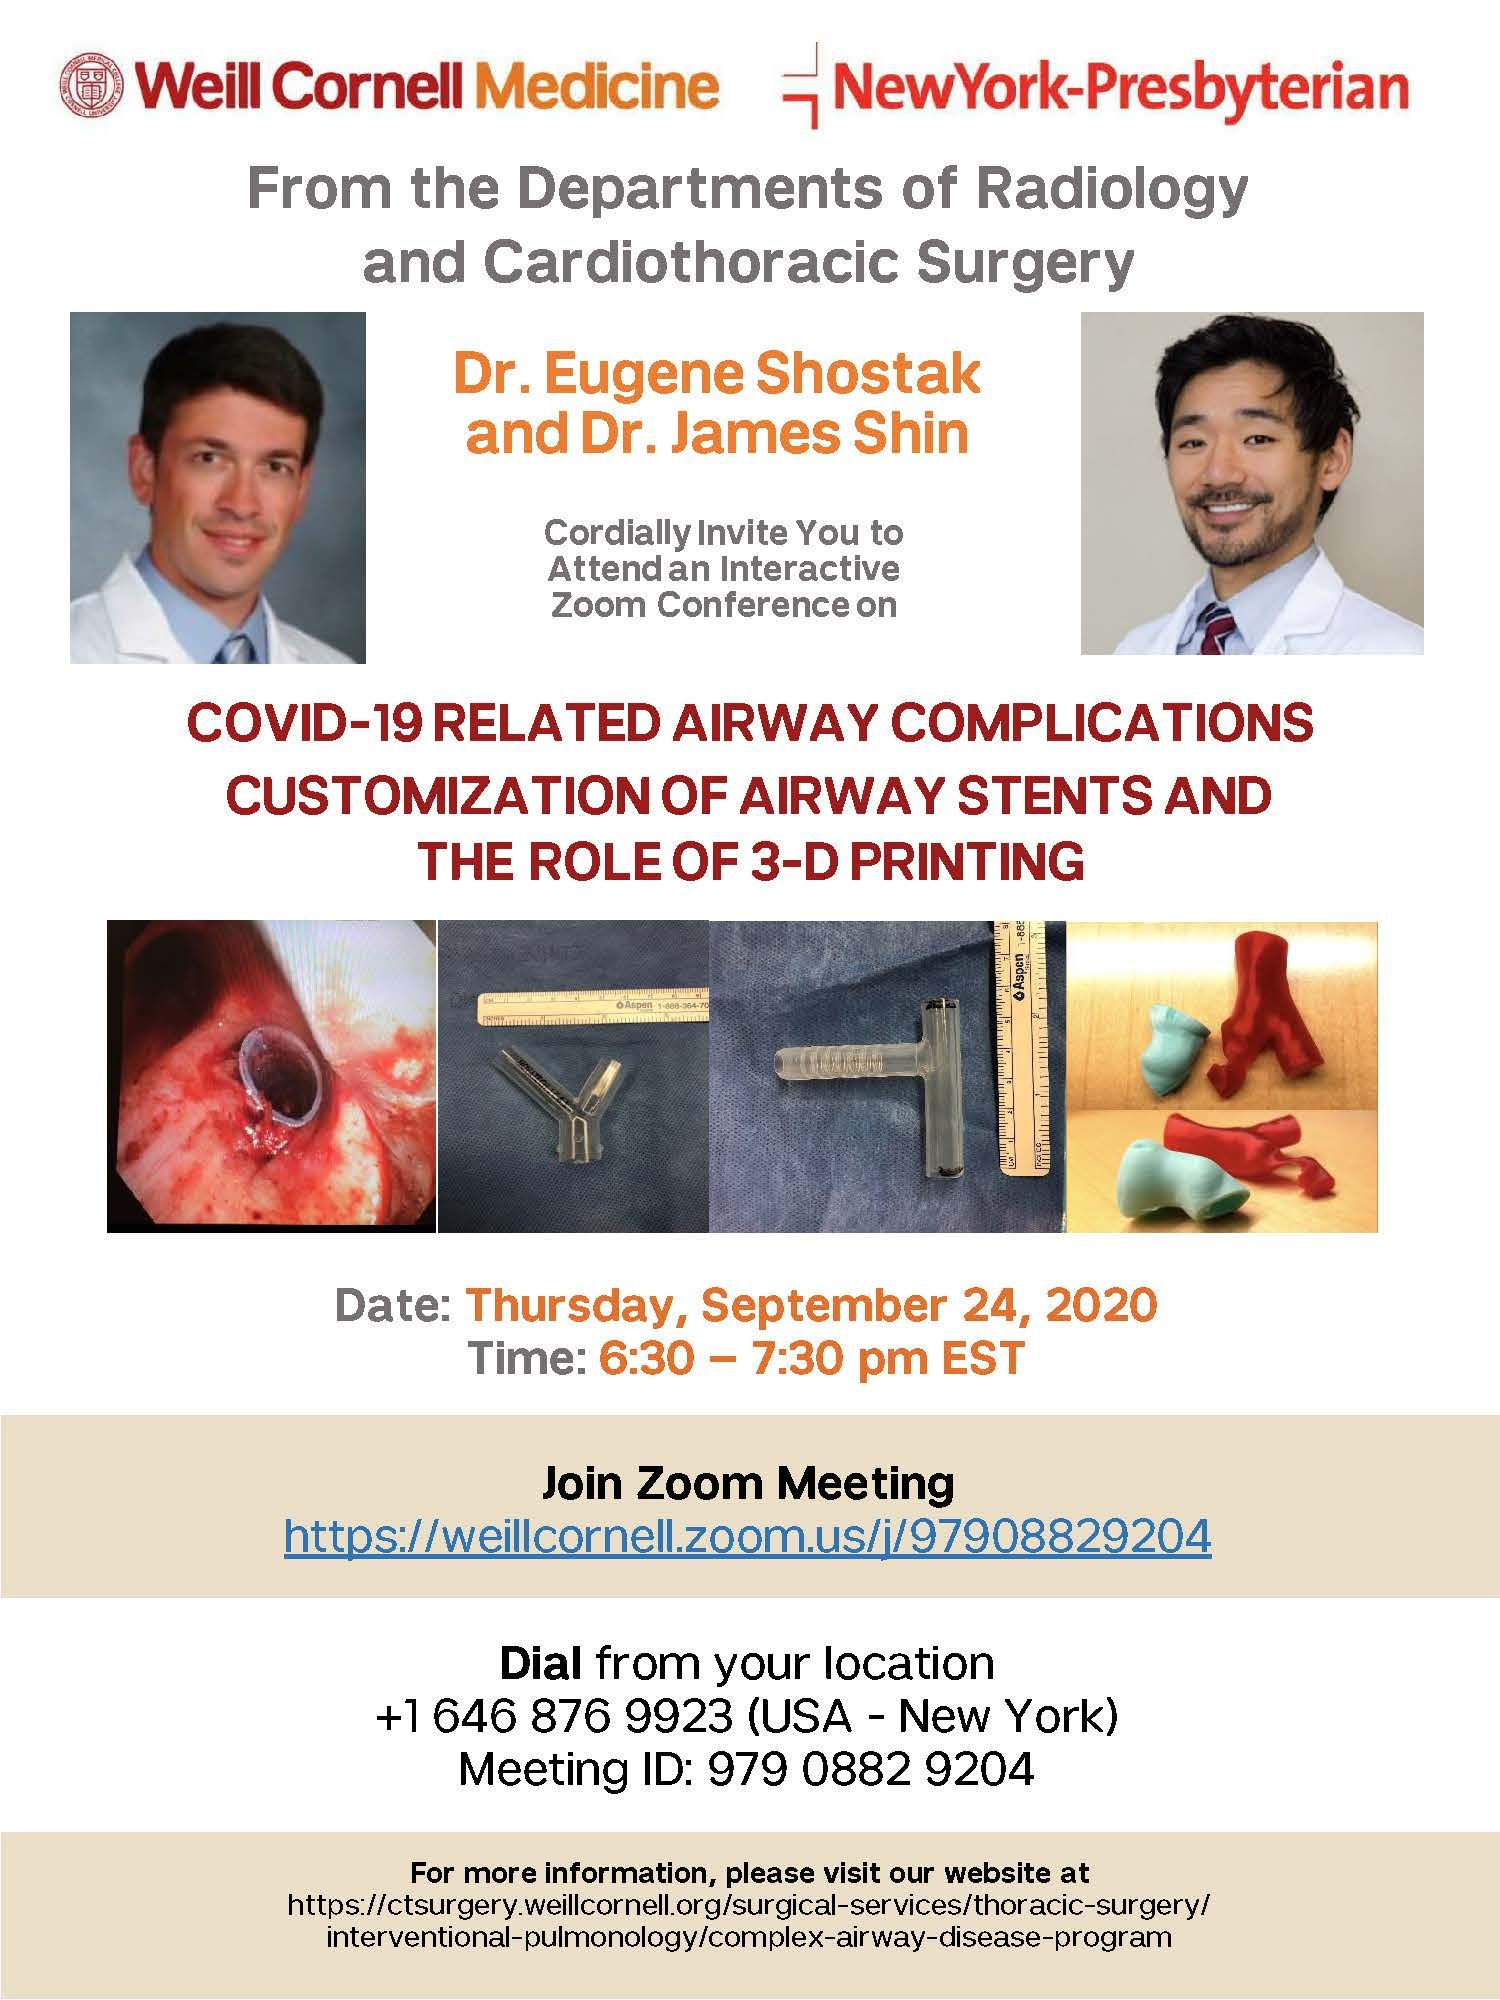 COVID-19 related airway complications customization of airway stents and the roles of 3-d printing